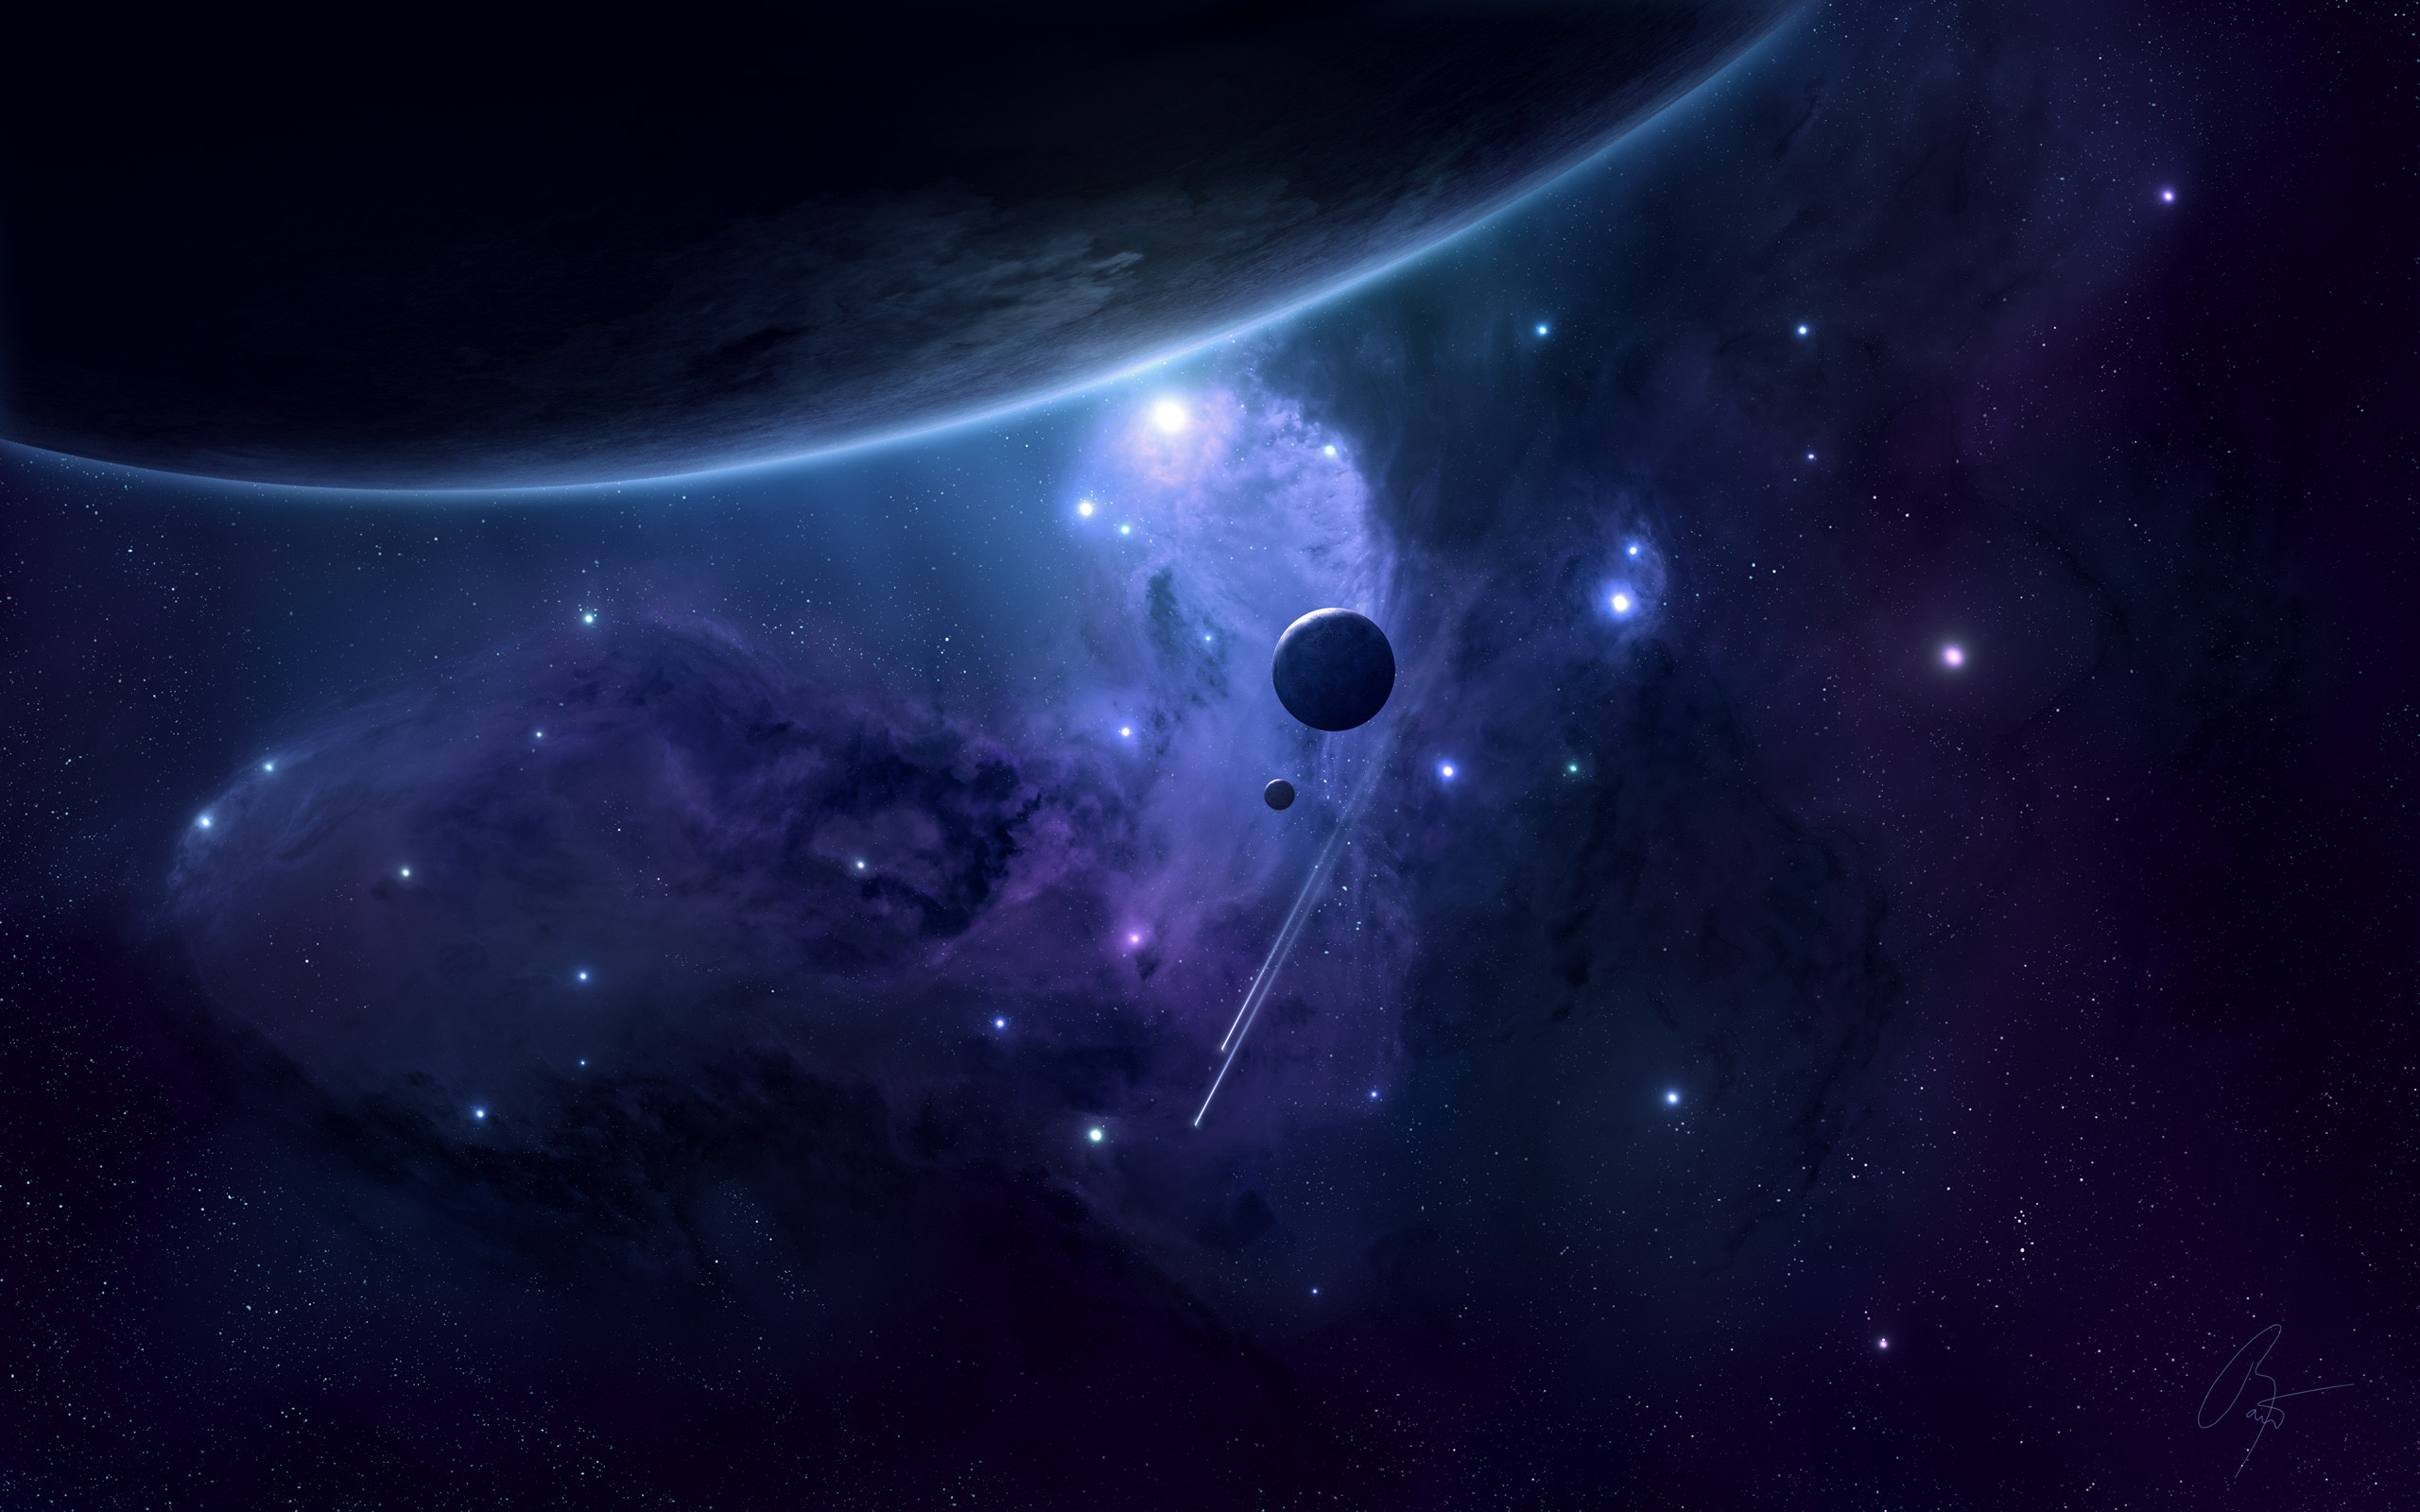 Planets and Stars Space Wallpaper